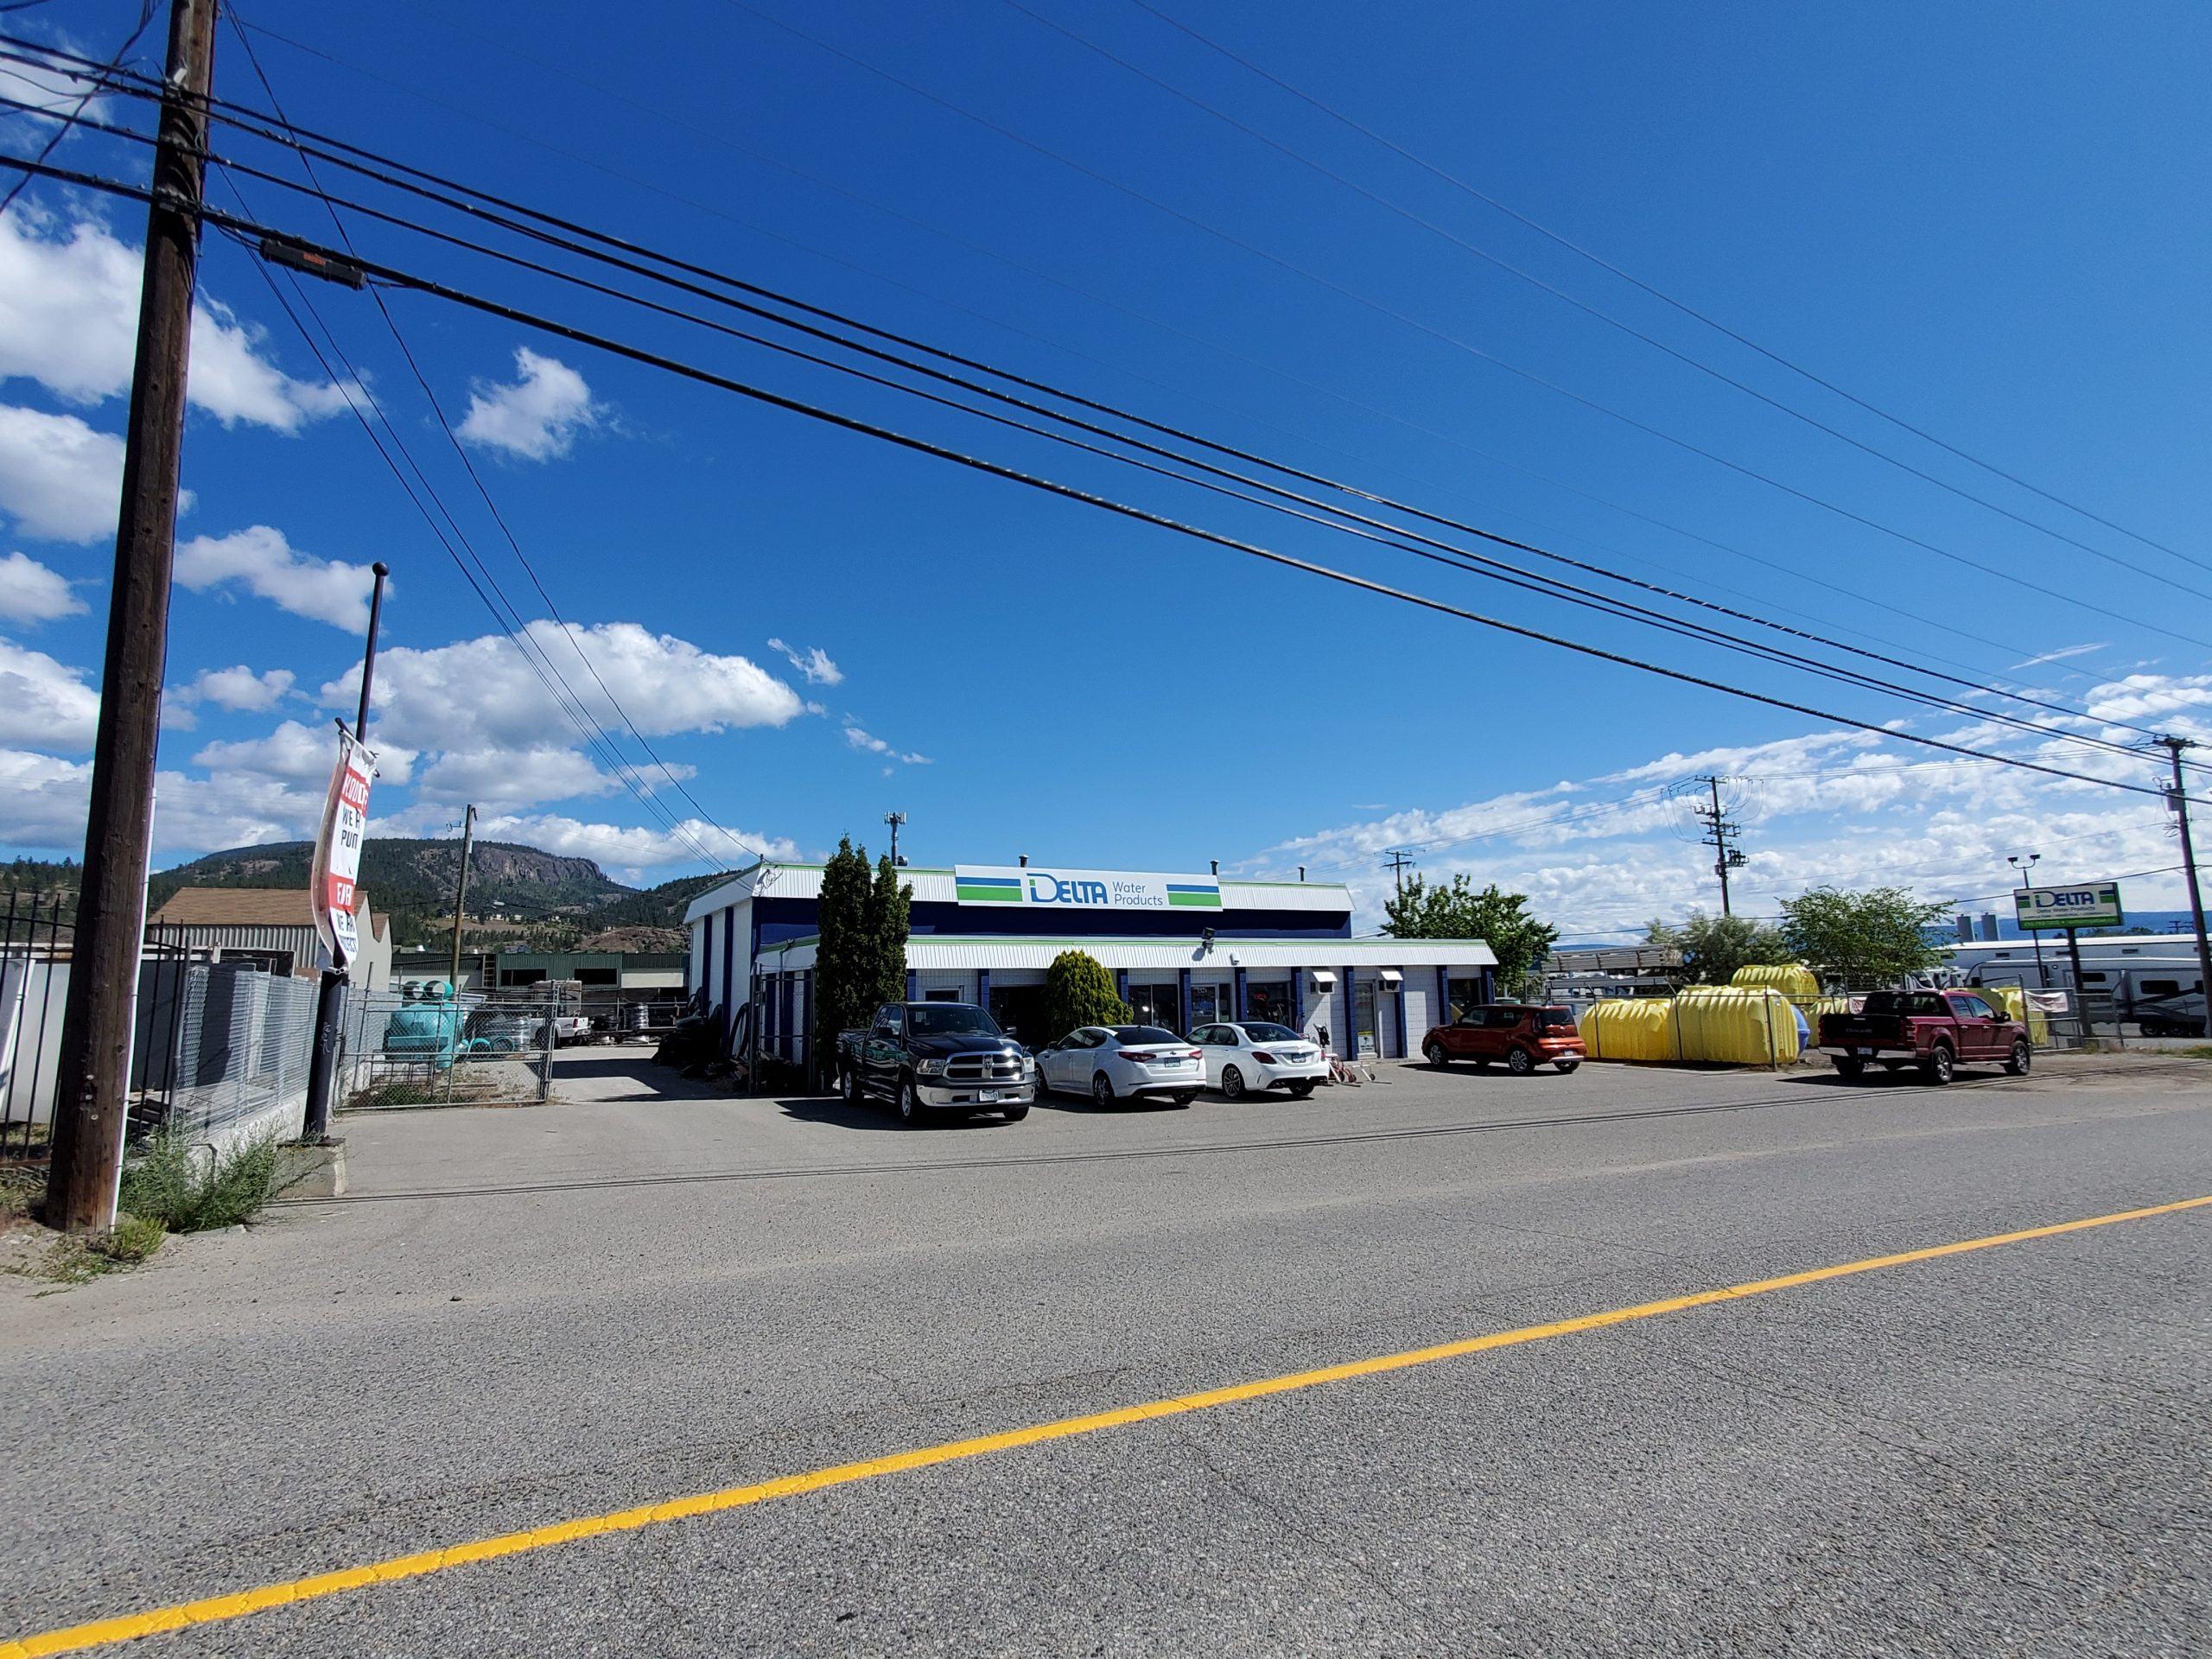 1524 Byland Road, West Kelowna, BC - Corner Industrial Lot with Holding Income